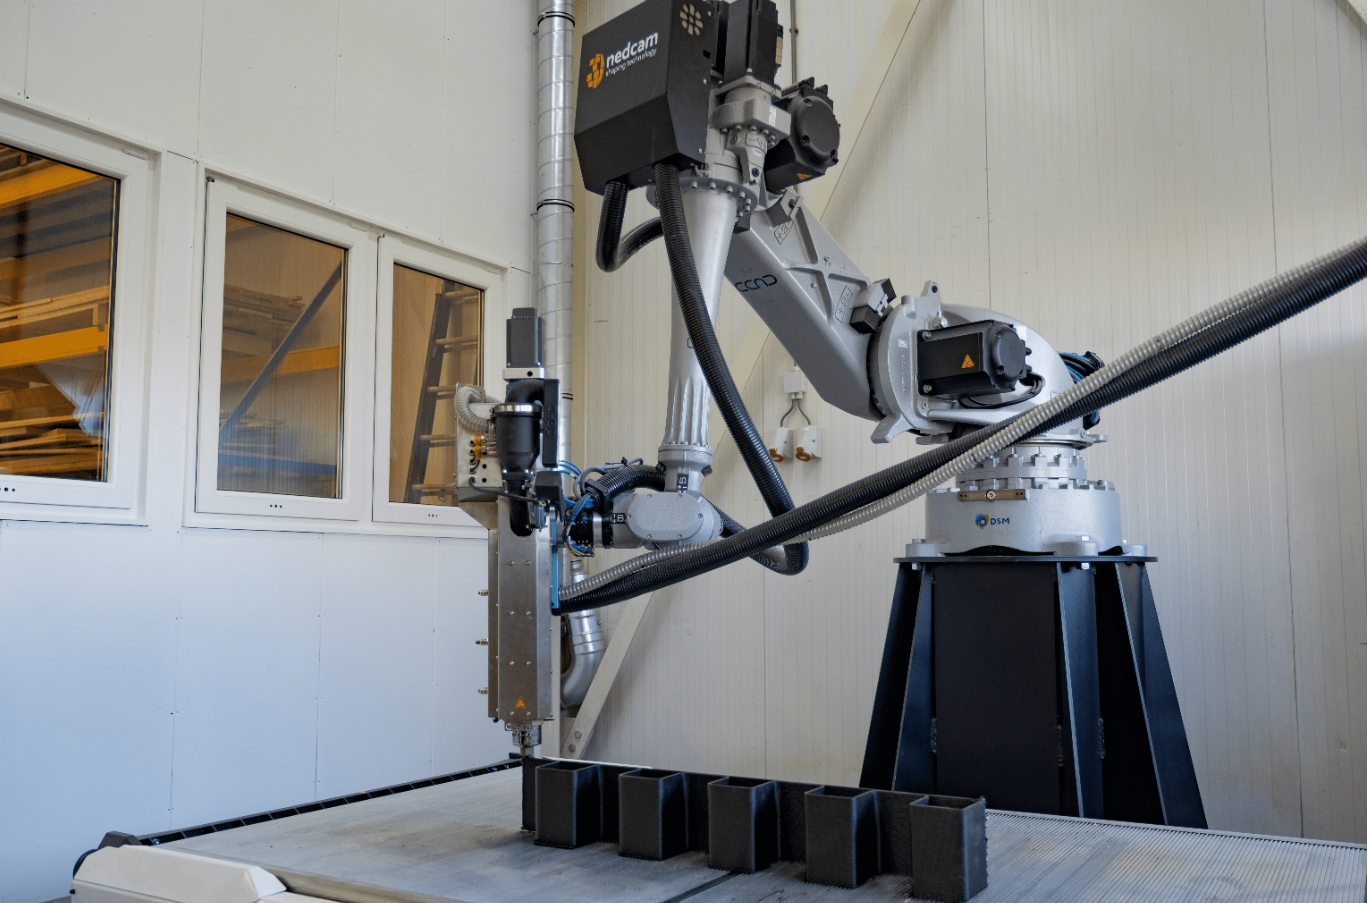 Nedcam has acquired a CEAD AM Flexbot 3D printer (pictured), which it will use to develop new applications for FGF 3D printing technology. Photo via DSM.